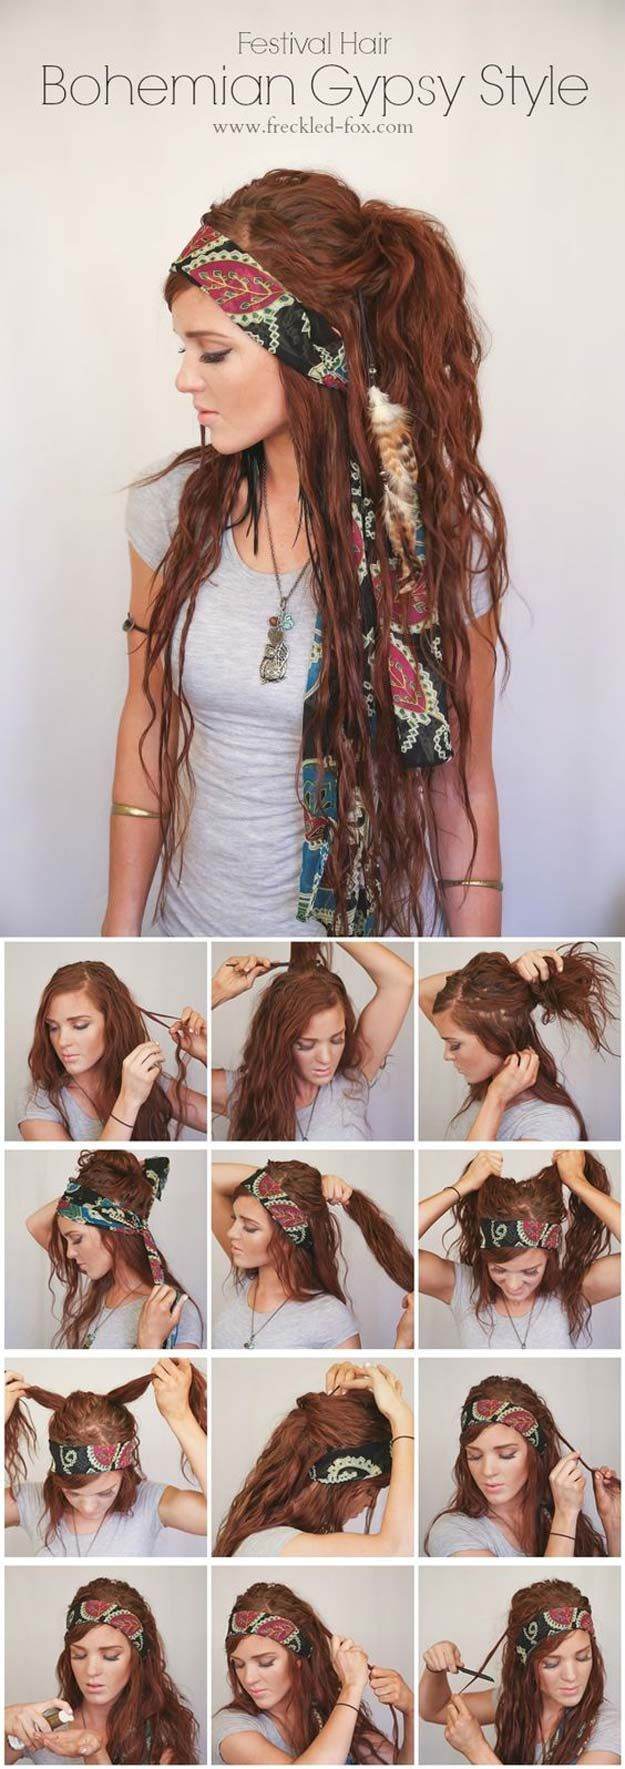 Festival Hair Tutorials - BOHEMIAN GYPSY STYLE - Short Quick and Easy Tutorial G...